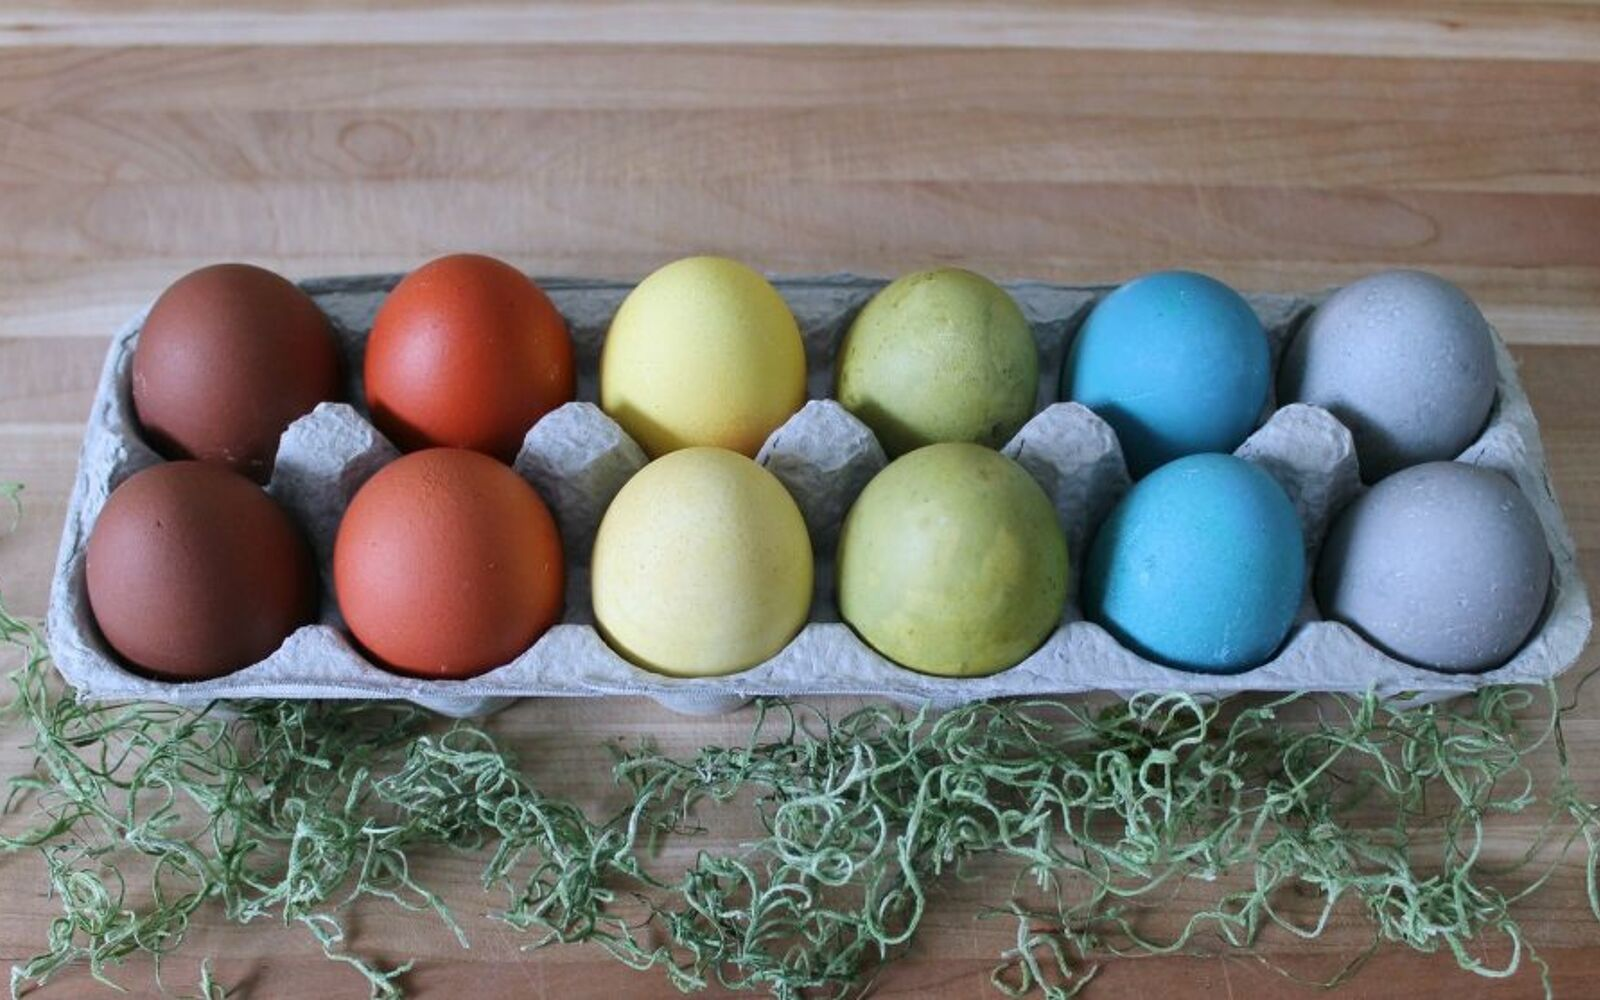 s 25 quick easter egg ideas that are just too stinkin cute, crafts, easter decorations, Dye eggs in bright natural hues